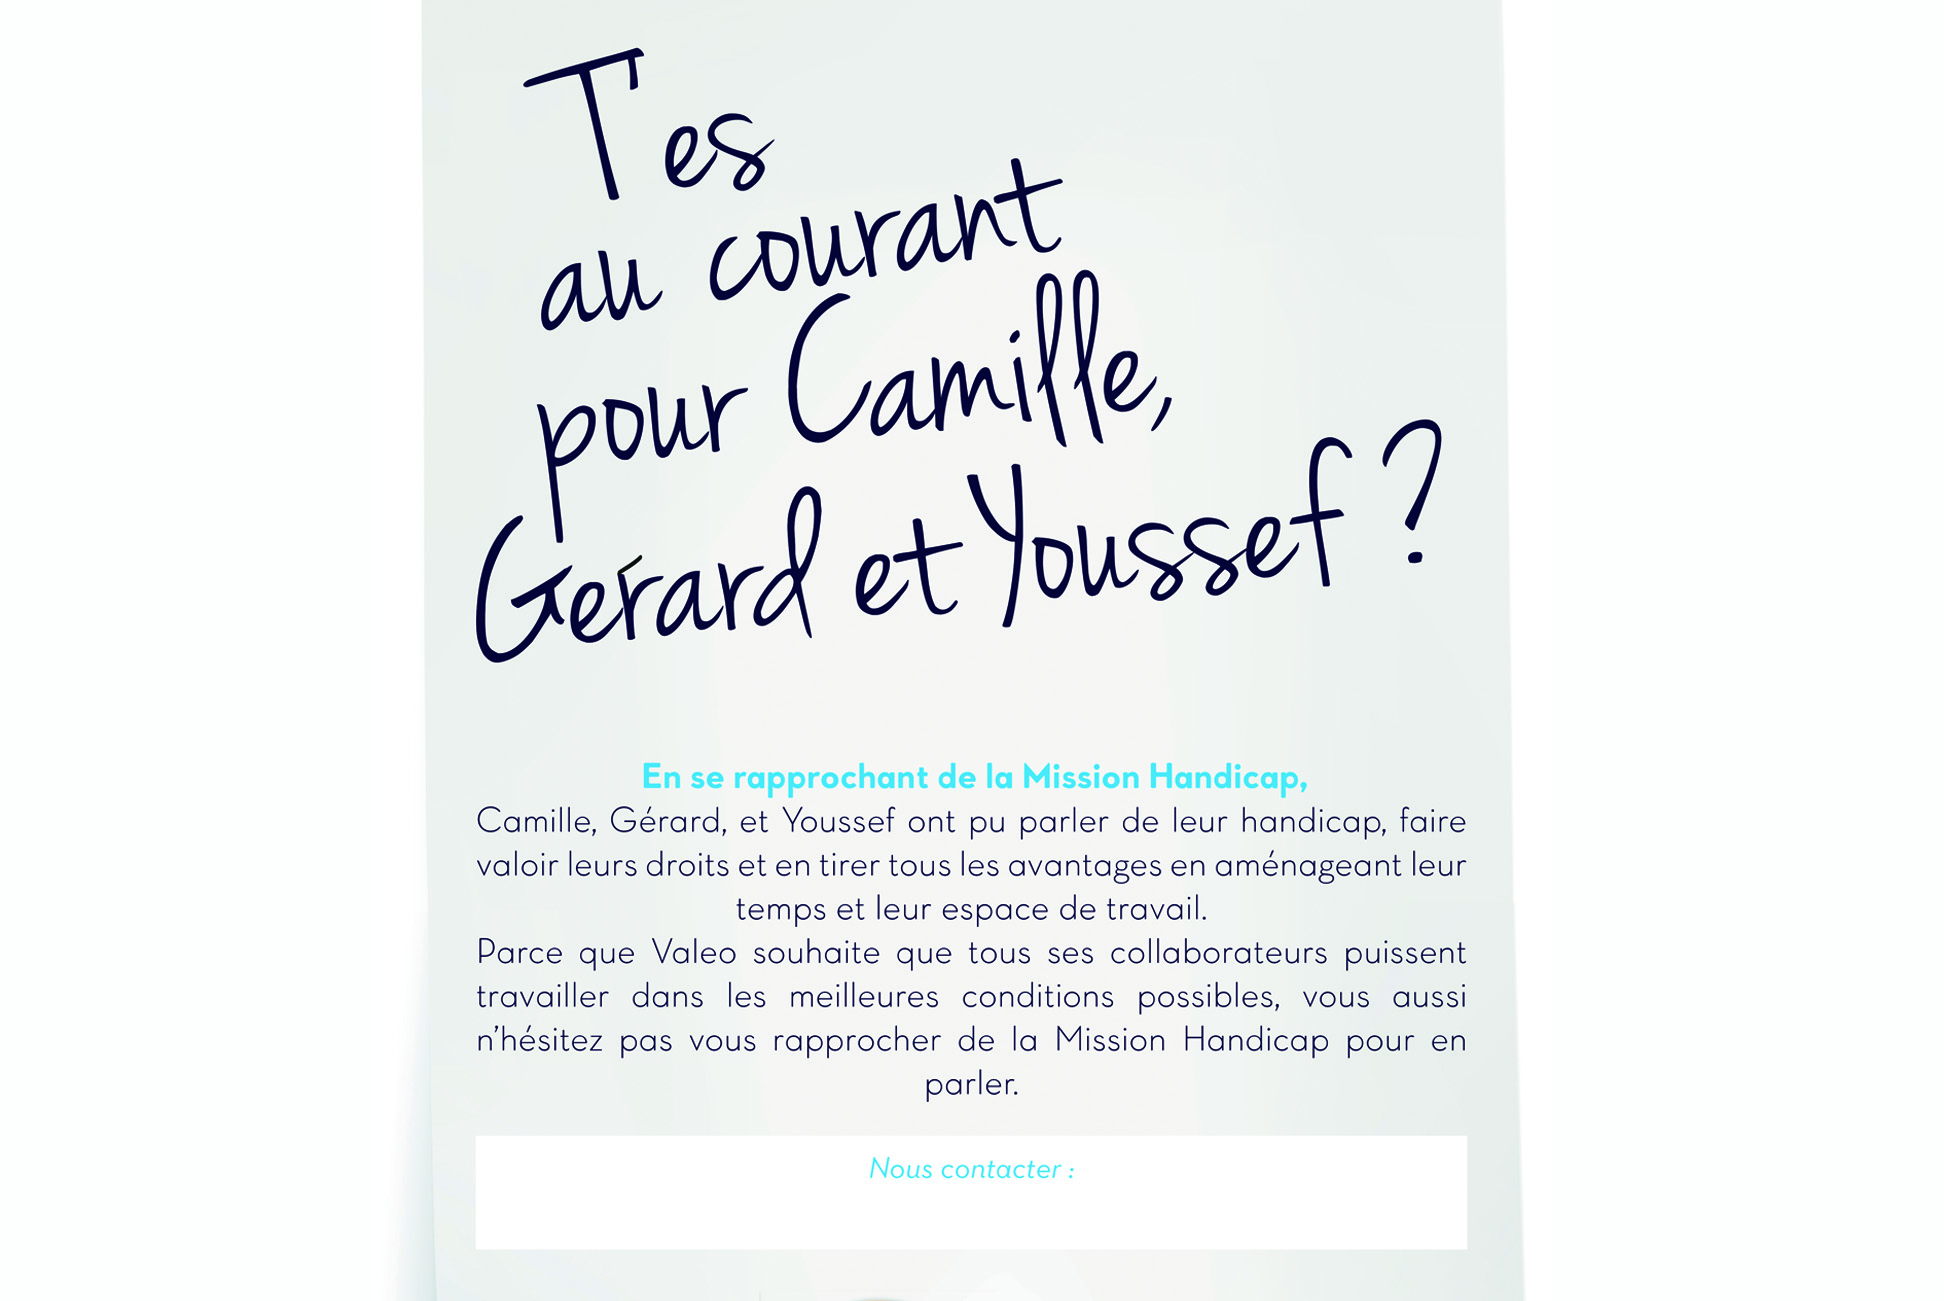 Campagne-des-post-it-interne-copie